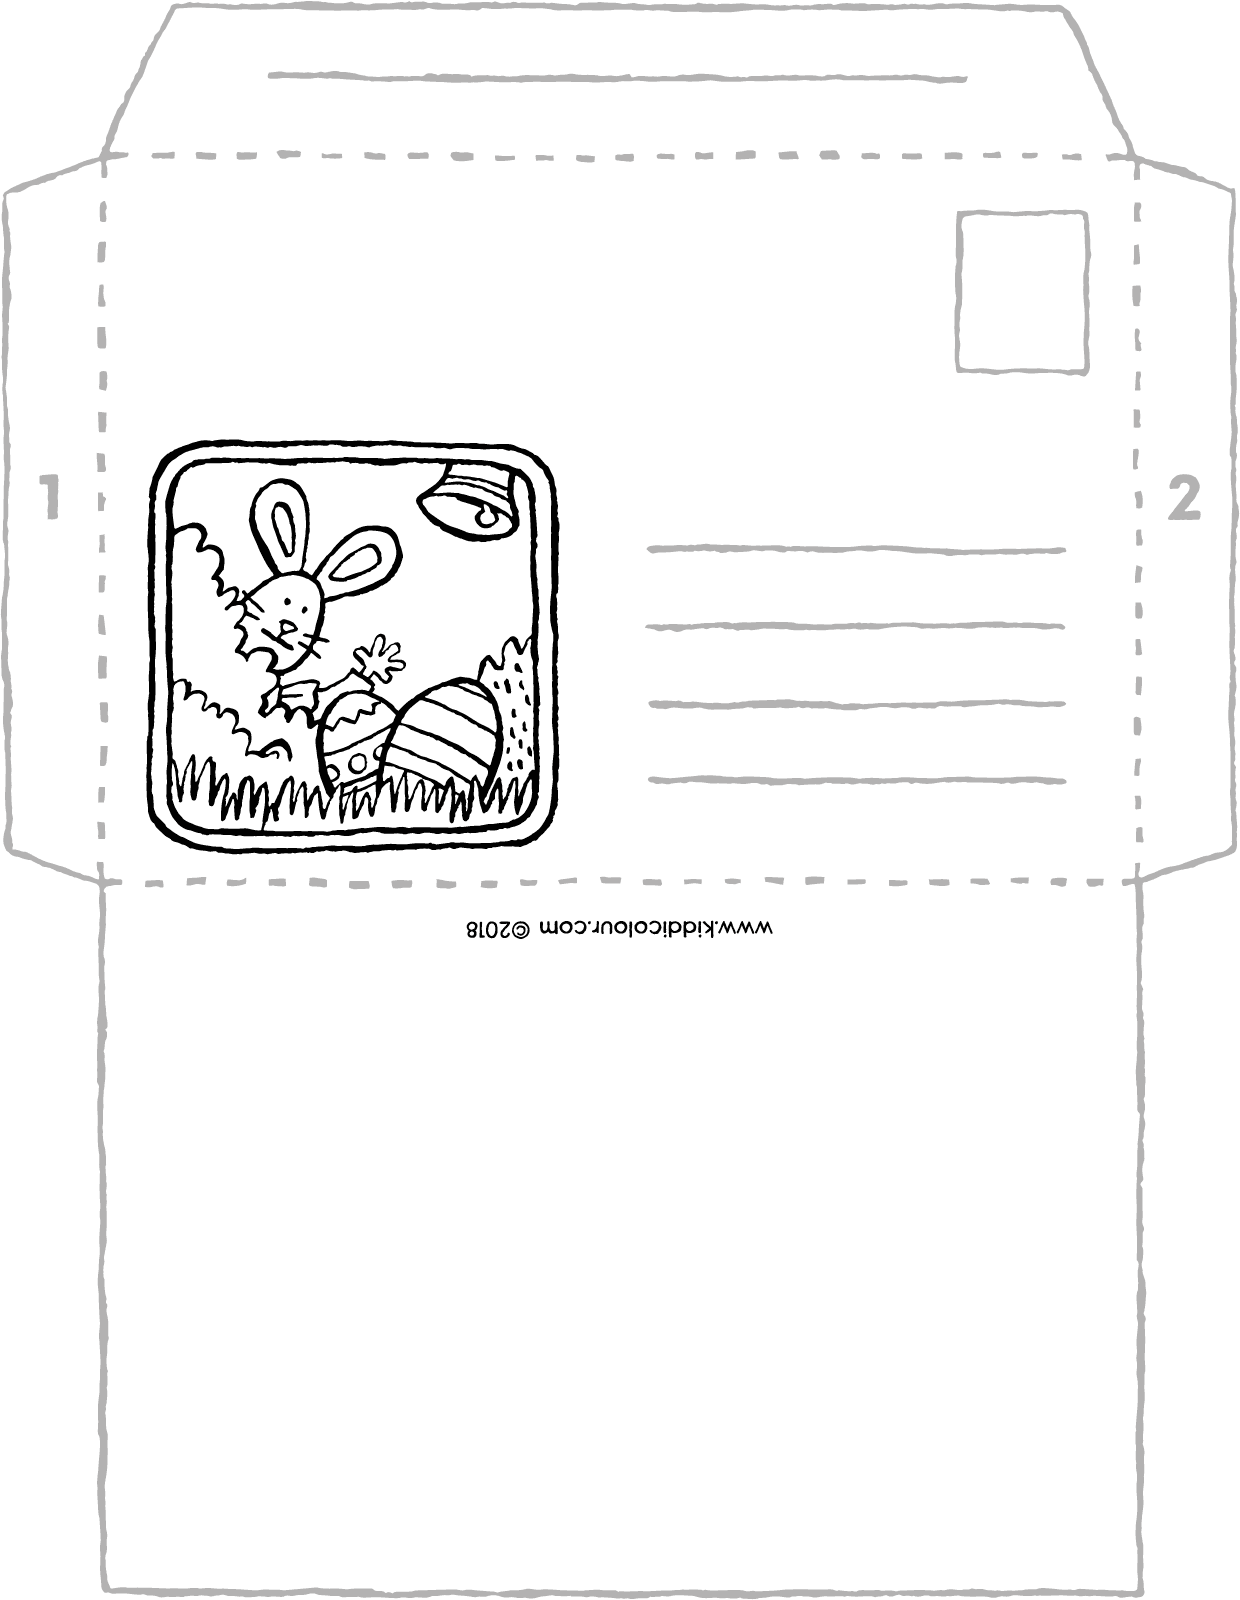 Easter envelope colouring page drawing picture 01V